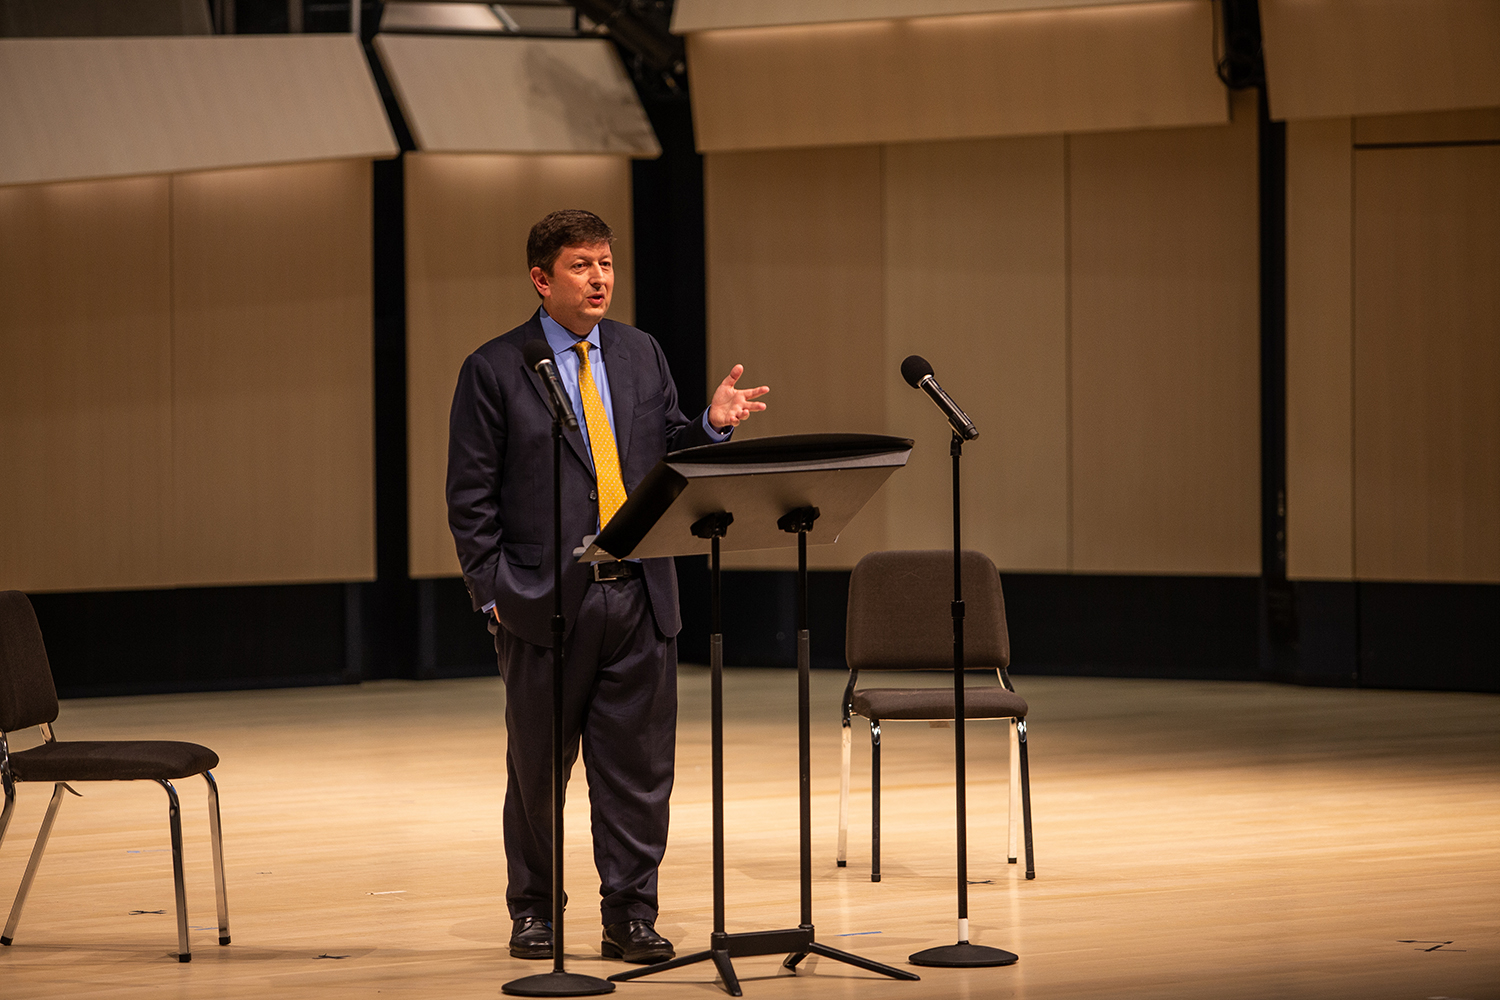 Sacha E. Kopp speaks during a forum as one of four candidates for the University of Iowa's Dean of the College of Liberal Arts and Sciences at Voxman Concert Hall on Monday, October 15, 2018. Previously, Kopp has served as the Dean of the College of Arts and Sciences at Stony Brook University and the Associate Dean for Undergraduate Education of the College of Natural Sciences for the University of Texas at Austin.